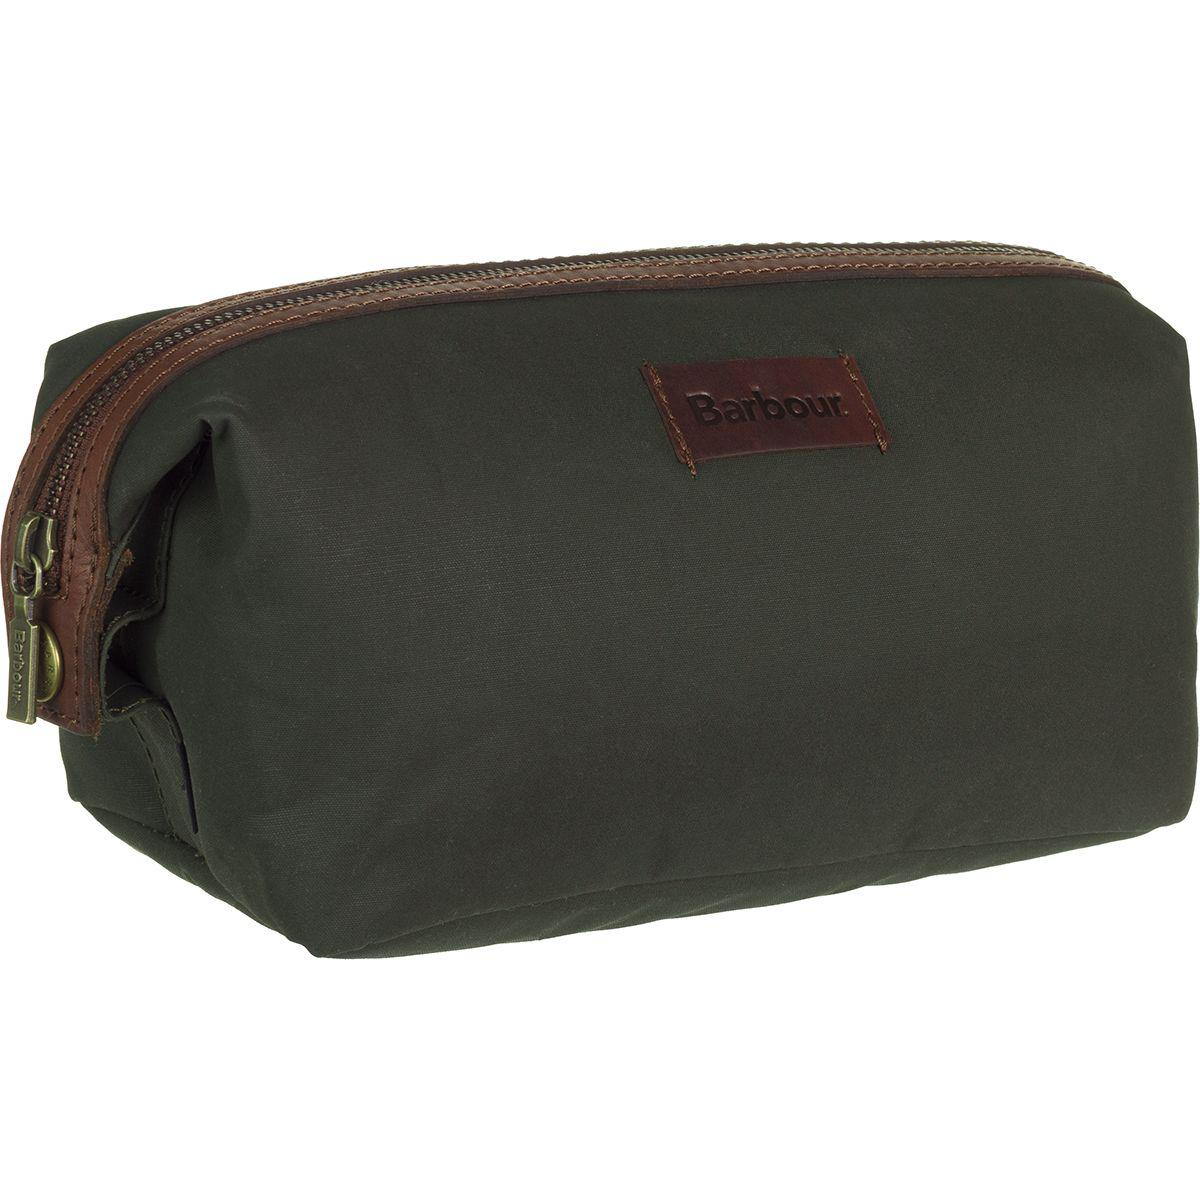 14a86ed5ec74 Lyst - Barbour Drywax Convertible Washbag in Green